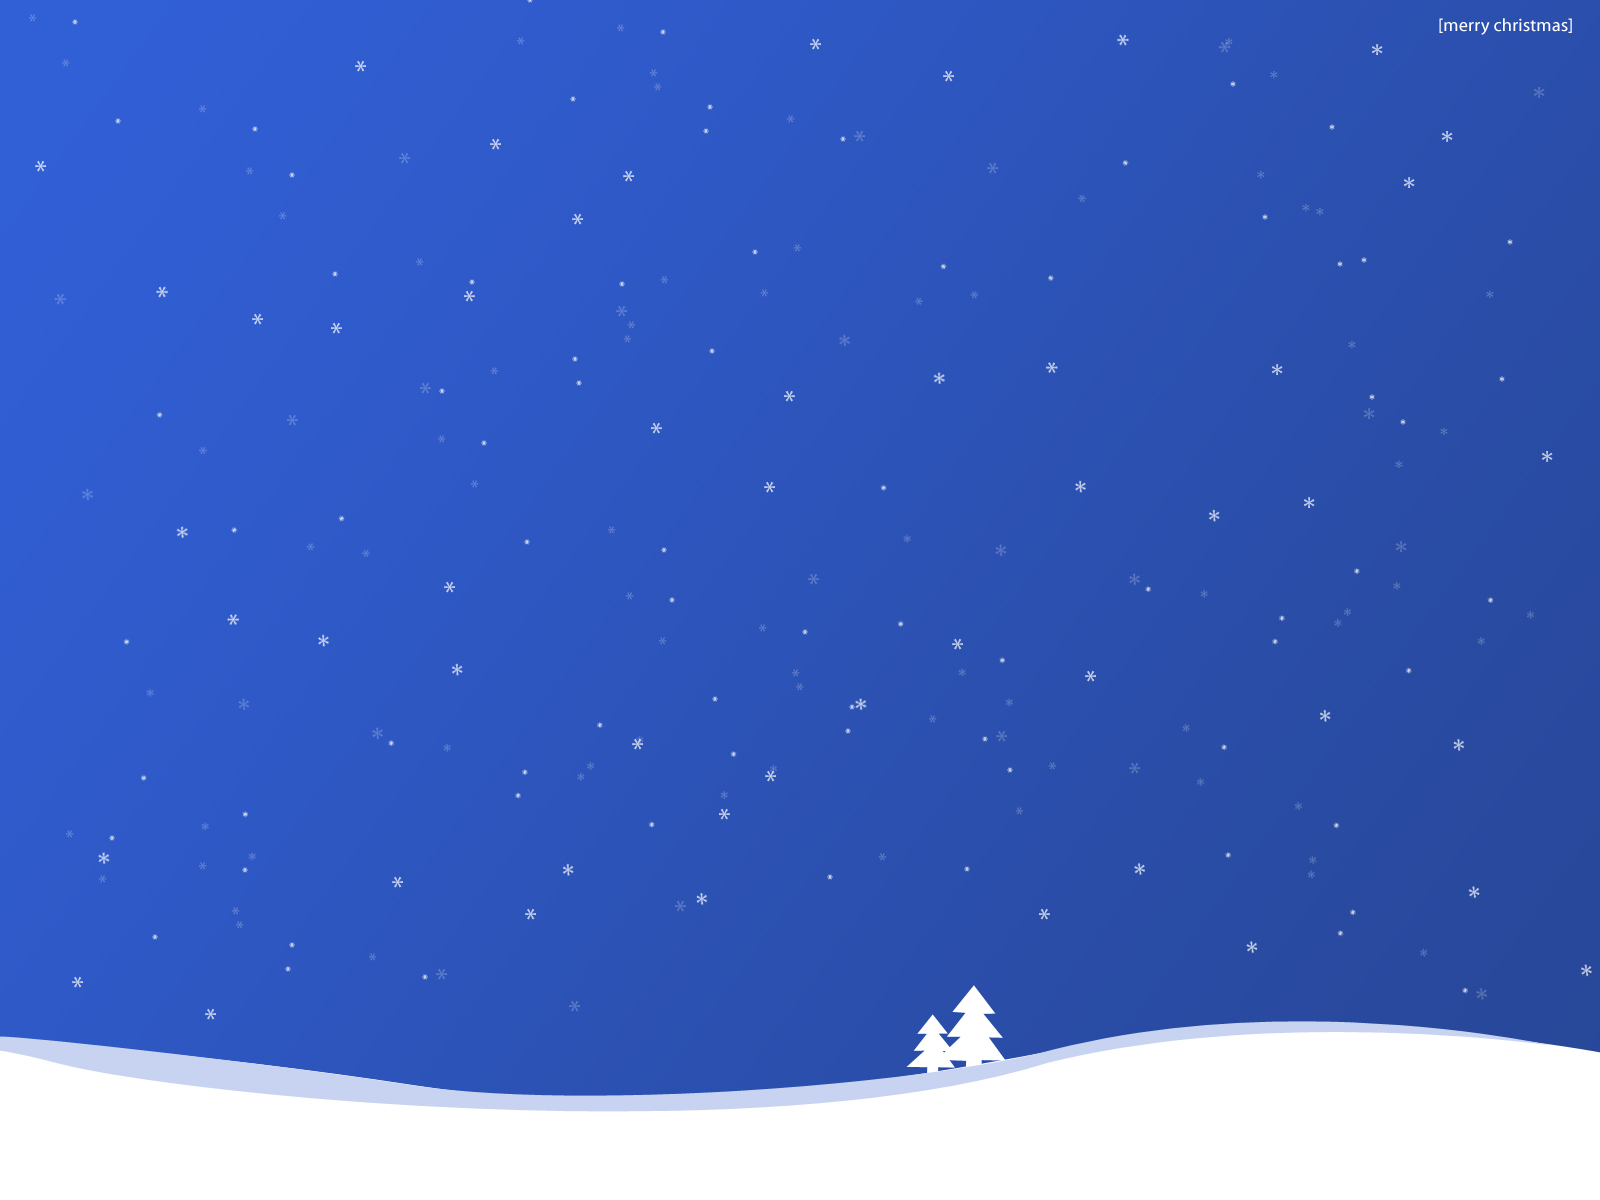 Download new screensavers Blue Christmas Wallpaper